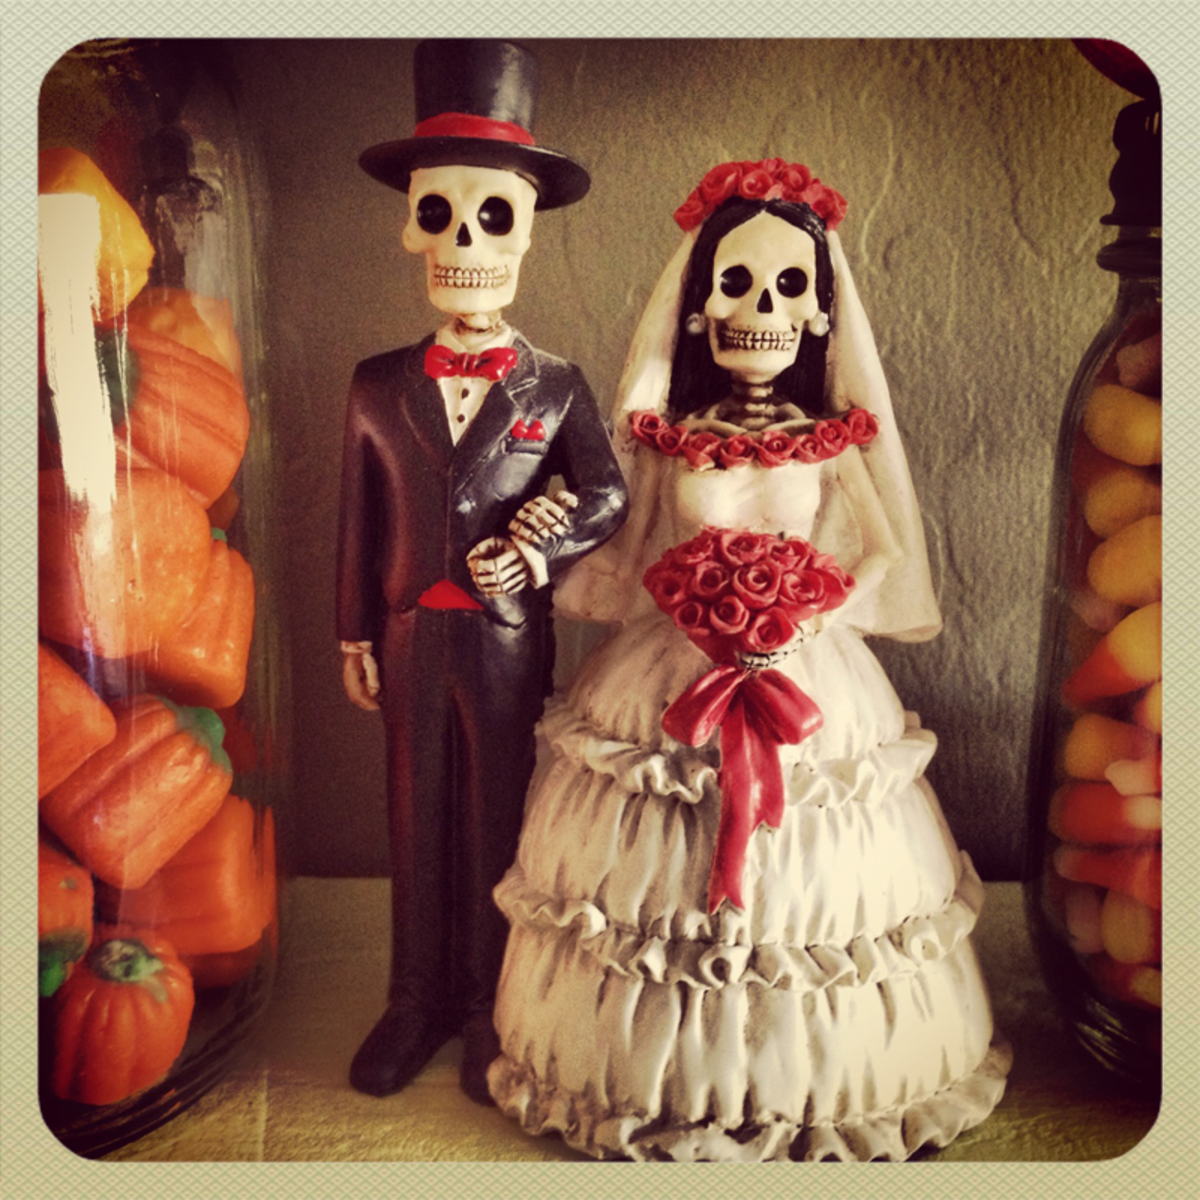 One of my favorite Day of the Dead decorations - A bride and groom figurine that was an engagement gift from my mother.